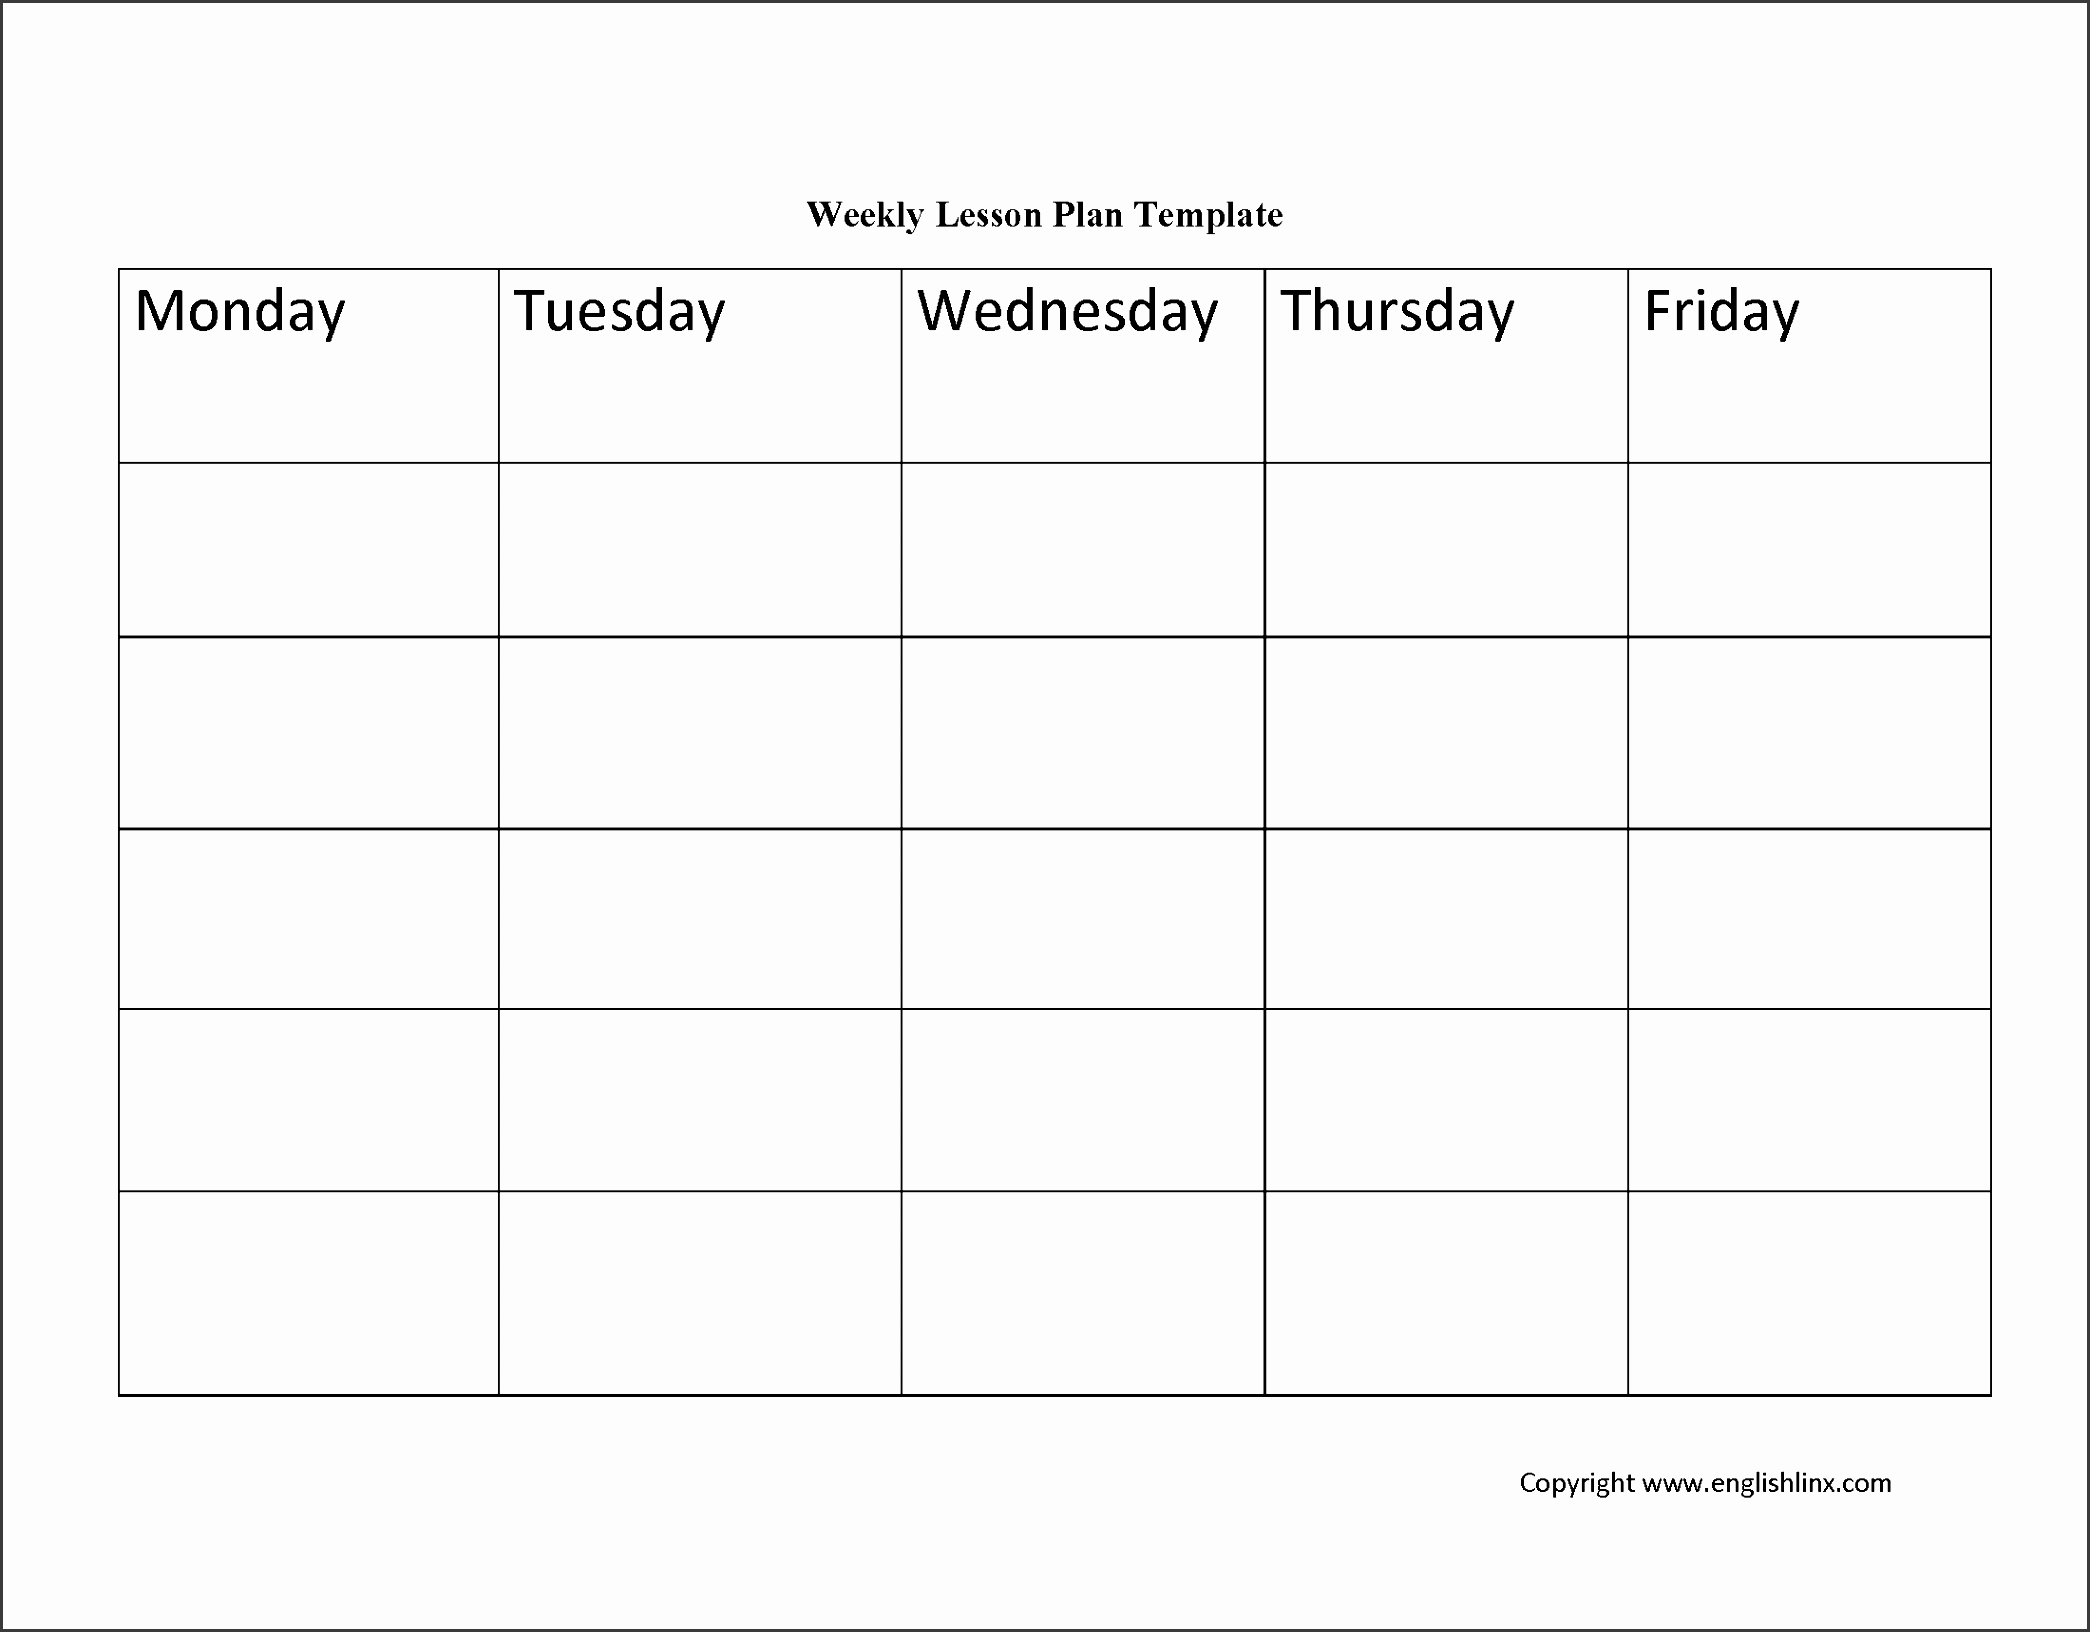 Weekly Lesson Plan Template Elementary Unique 10 Academic Lesson Planner Template Sampletemplatess